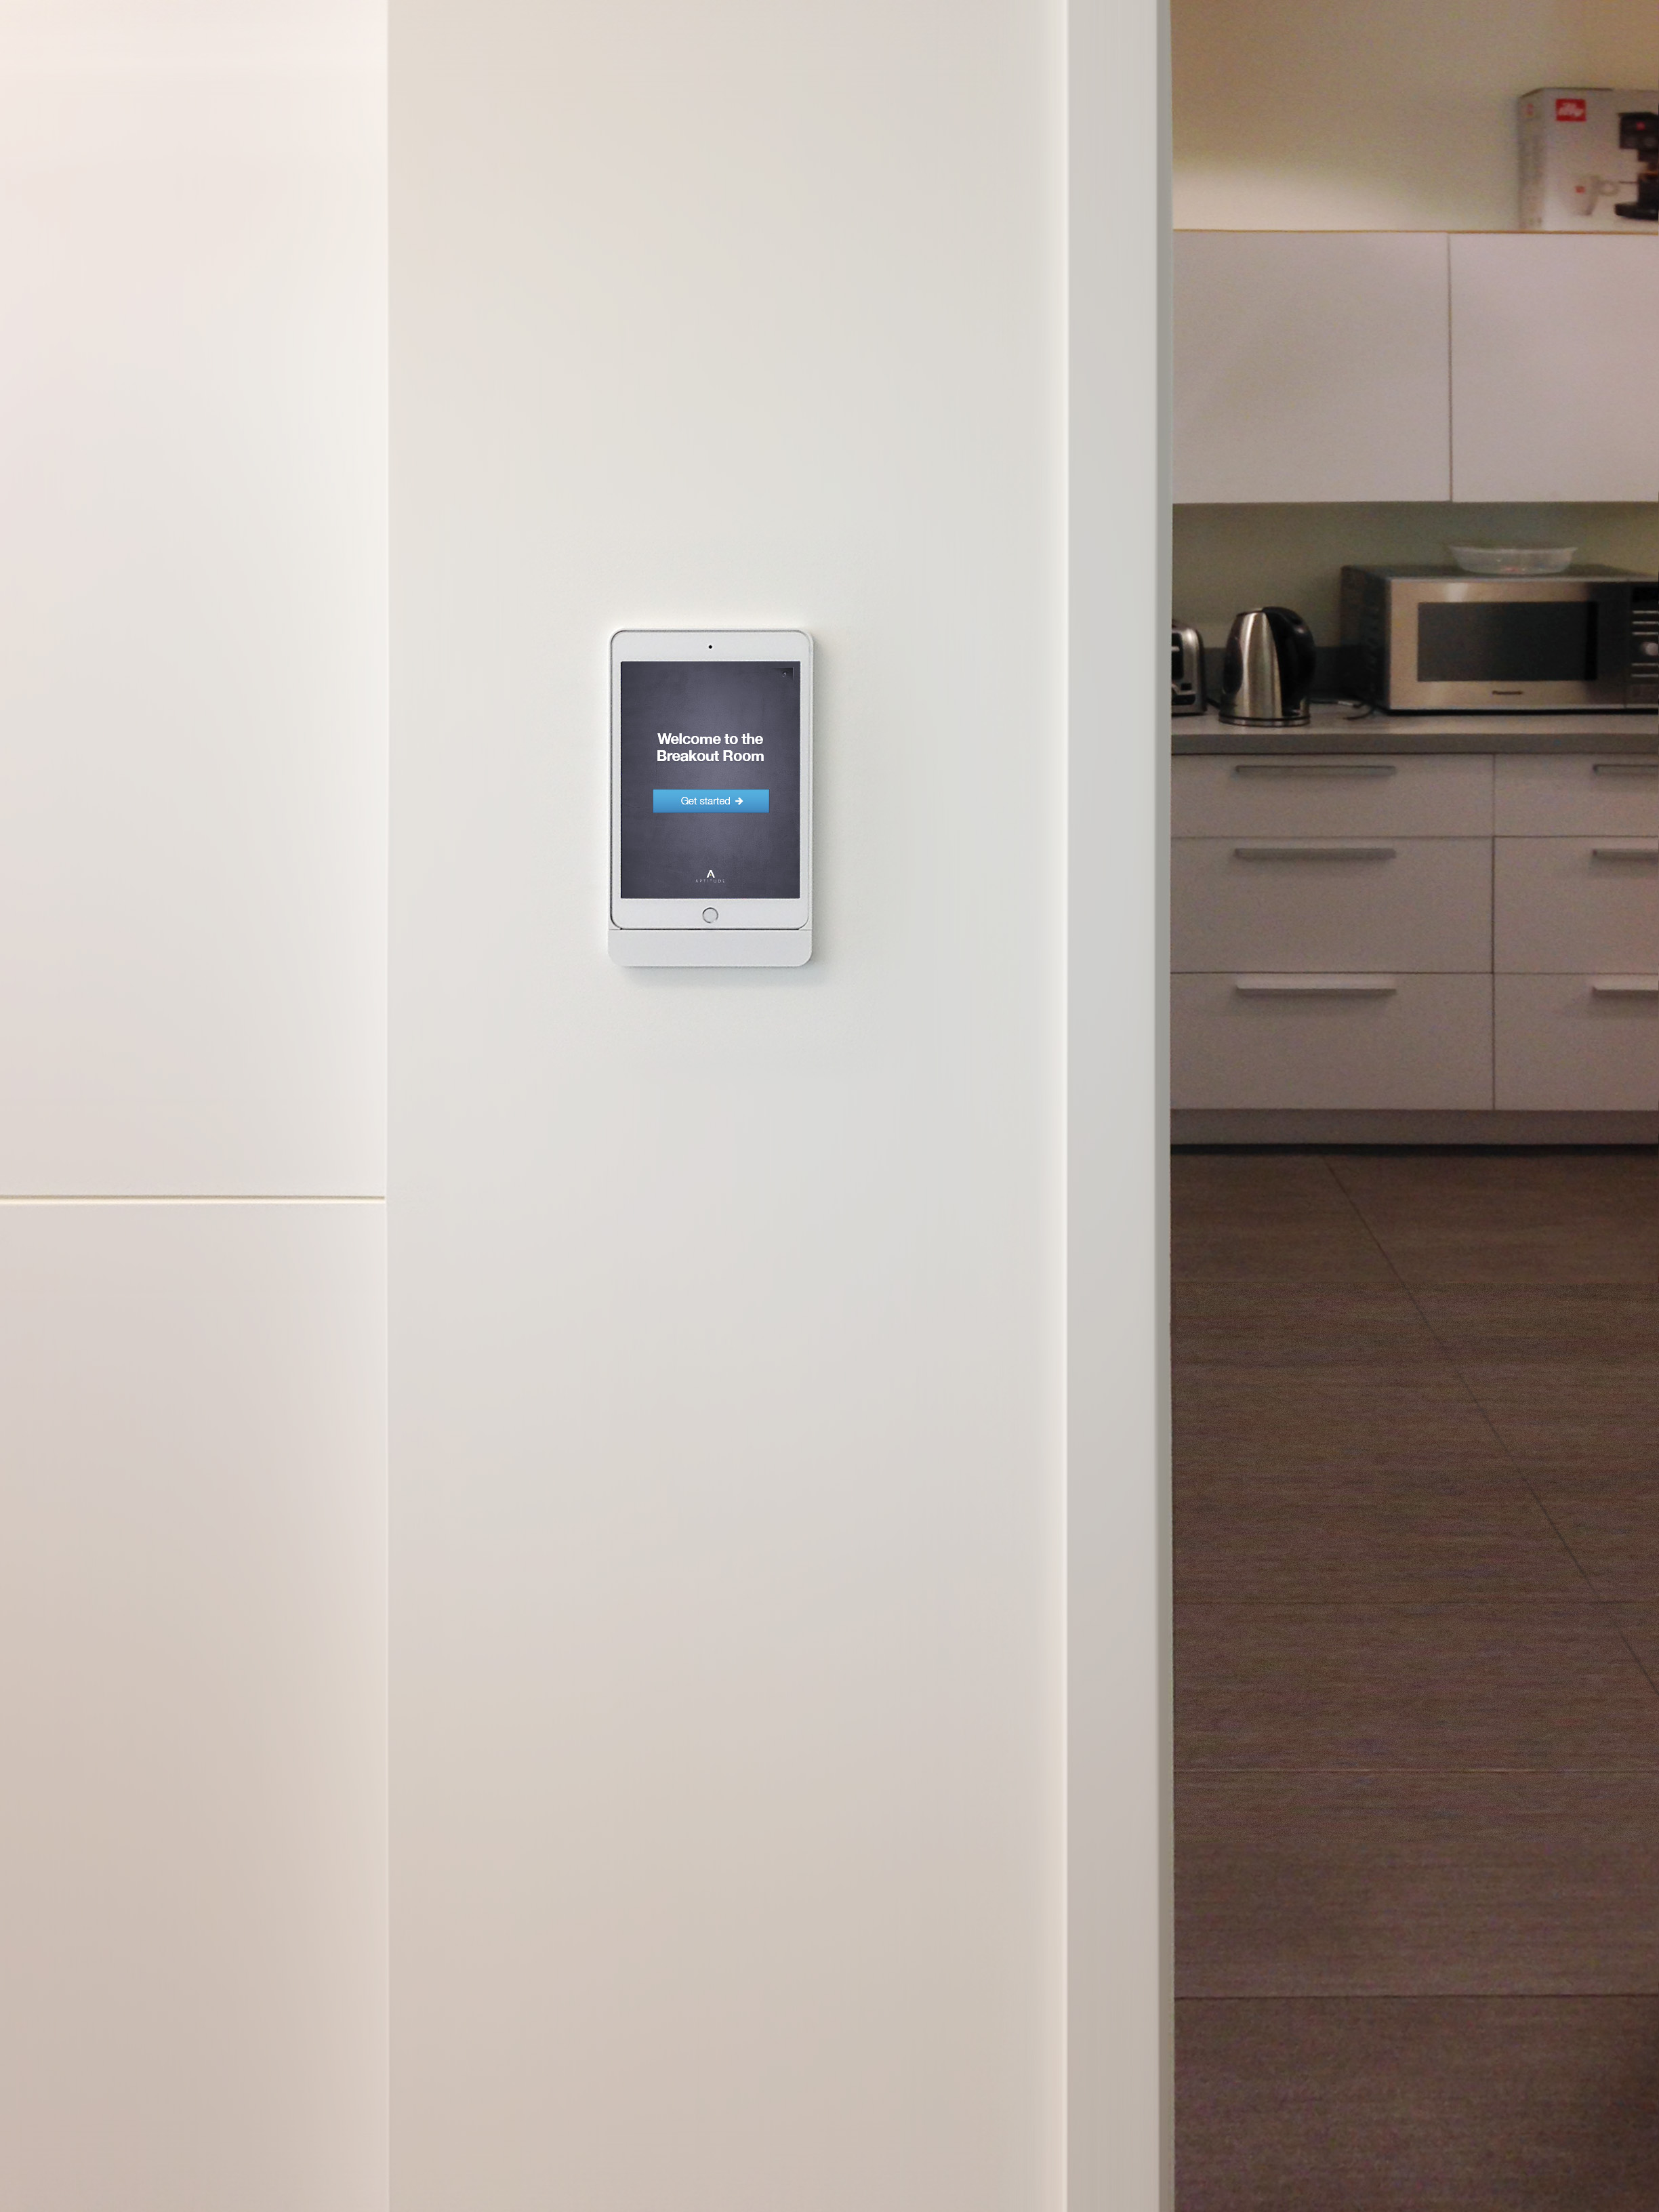 iPads in Basalte Eve® wall mounts greet guests as they enter the various outfitted rooms throughout this space.